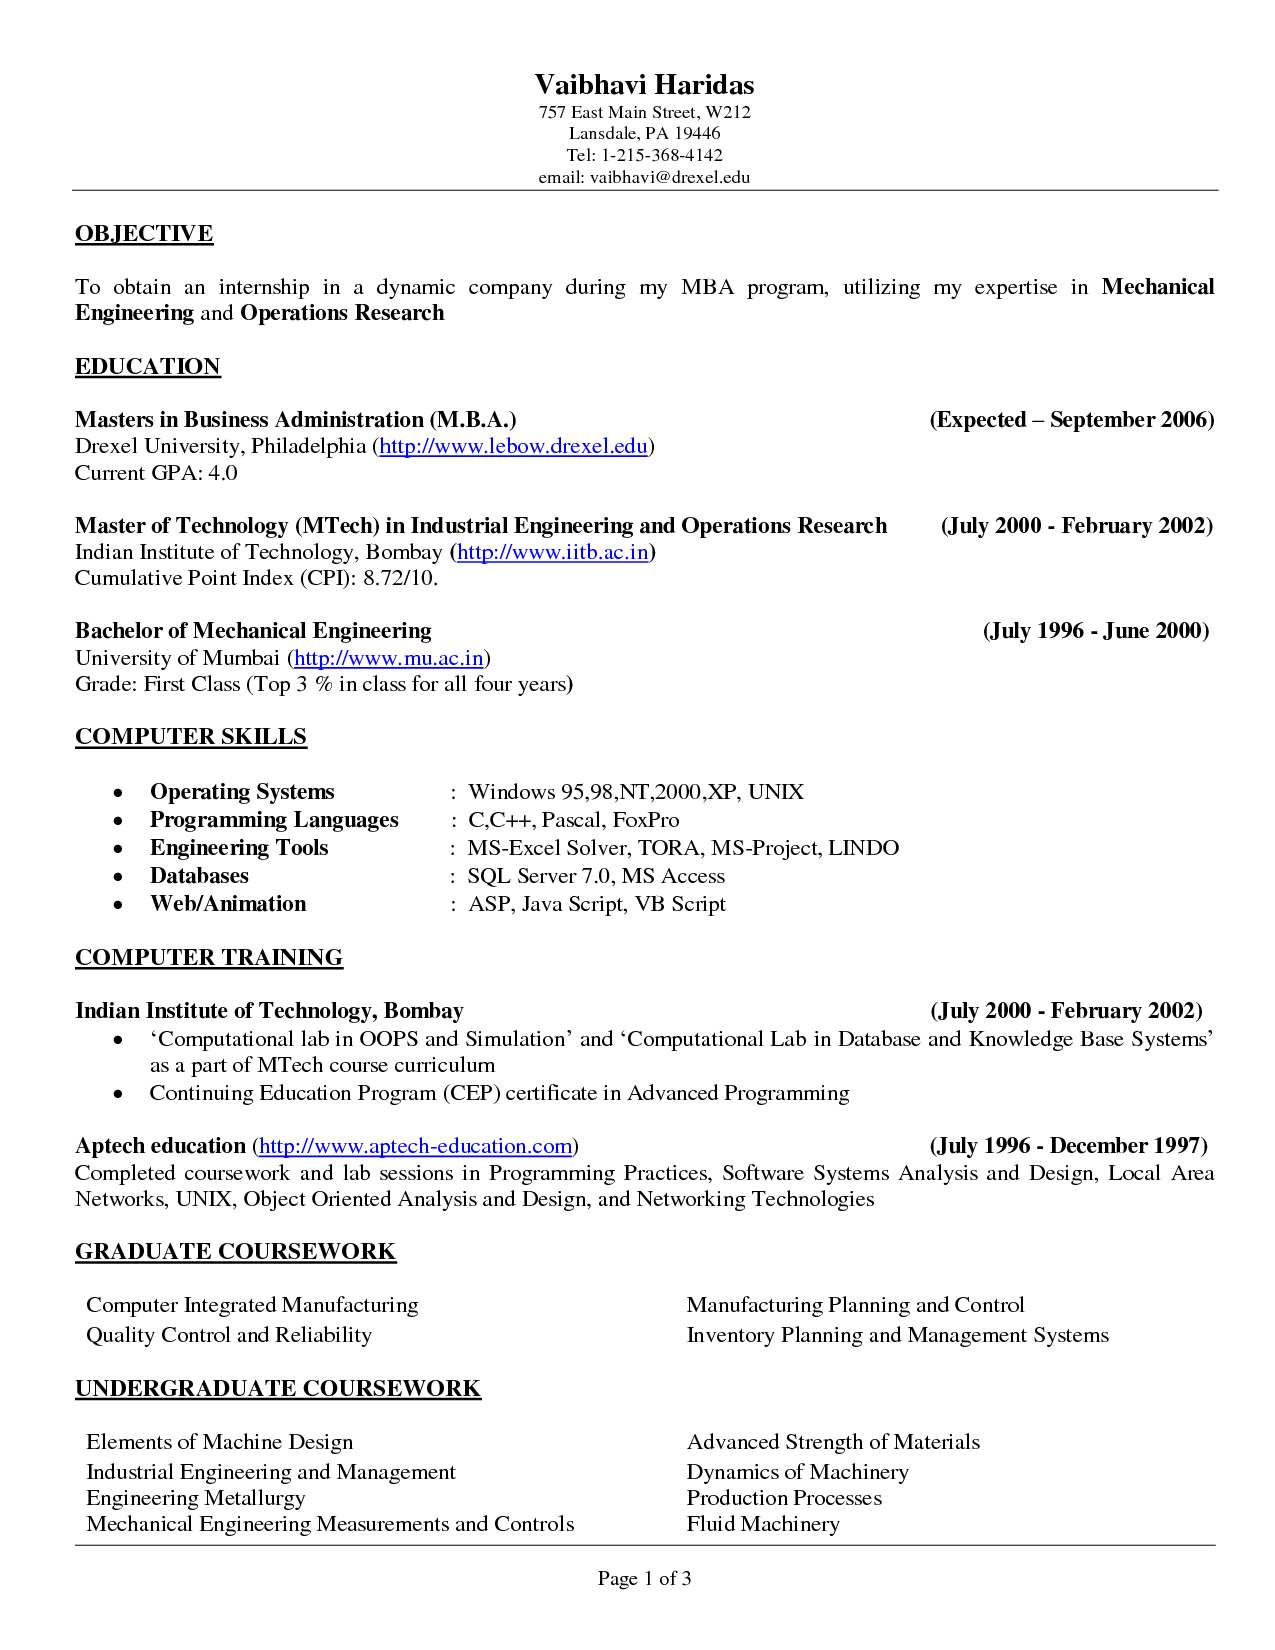 resume objective example best templateresume objective examples application letter sample - Secretary Objective For Resume Examples